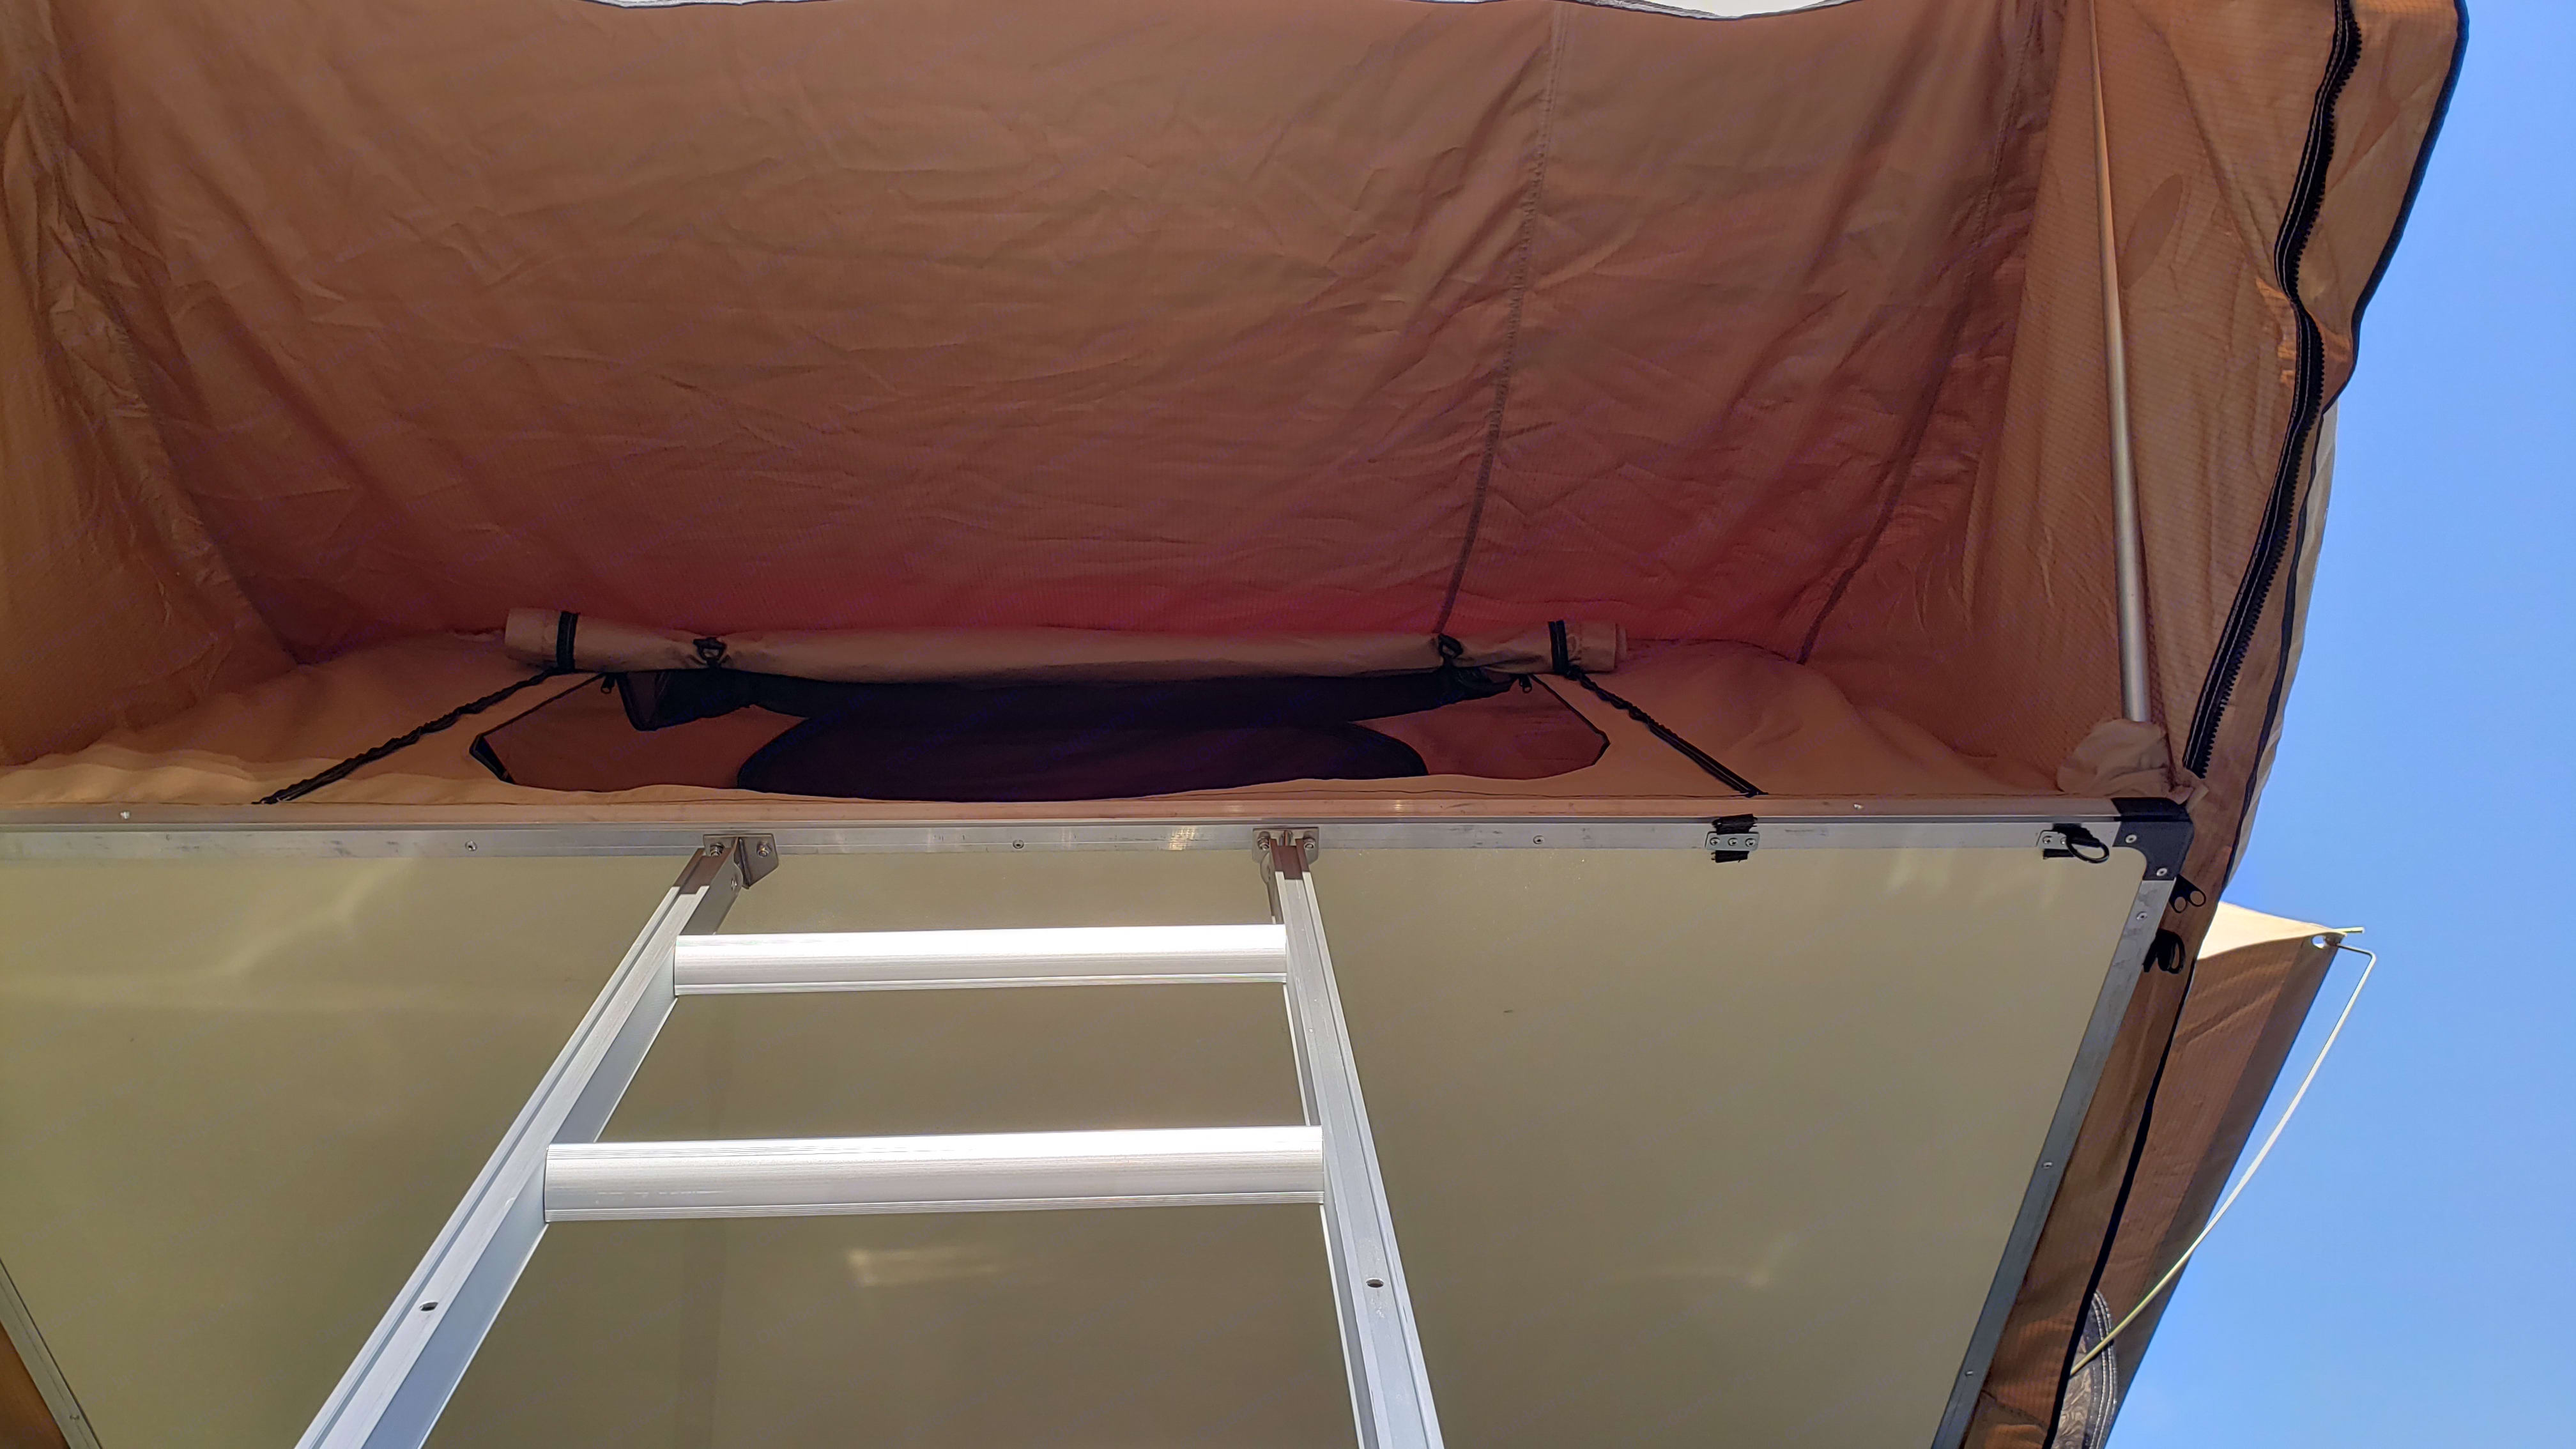 Covered entryway for protection and privacy. Jeep Liberty 2008